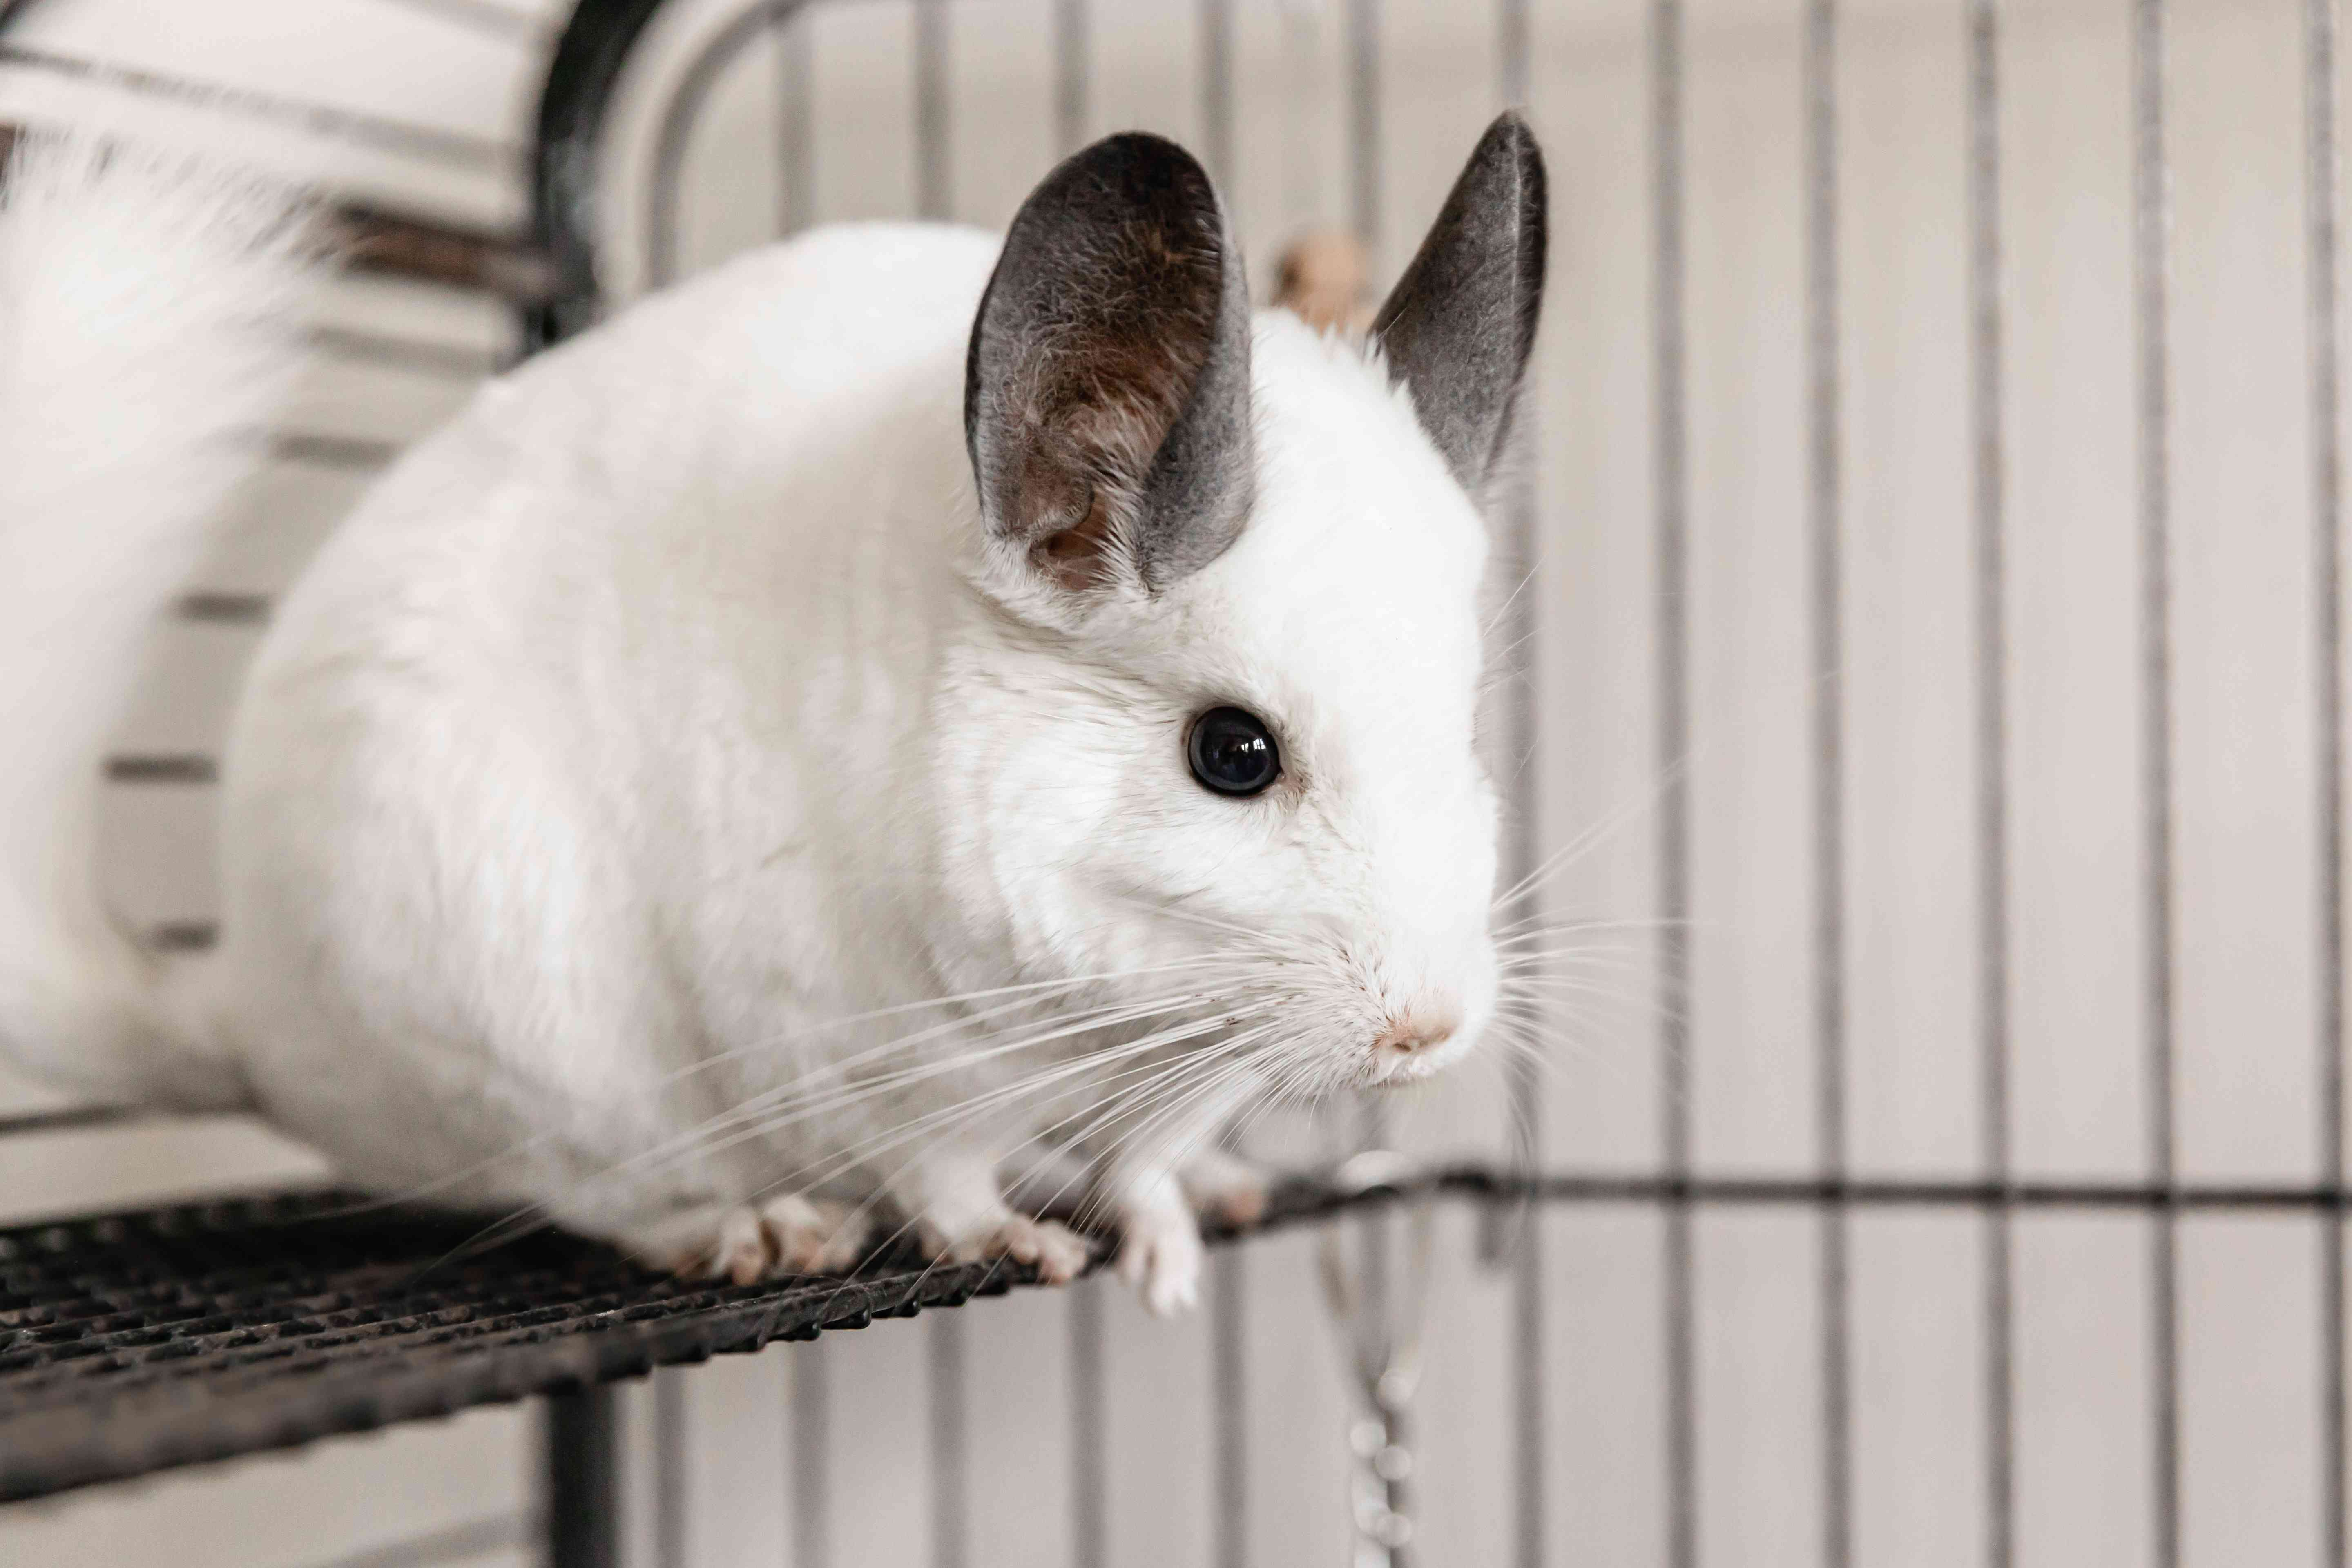 White chinchilla with large gray ears sitting on metal perch inside cage